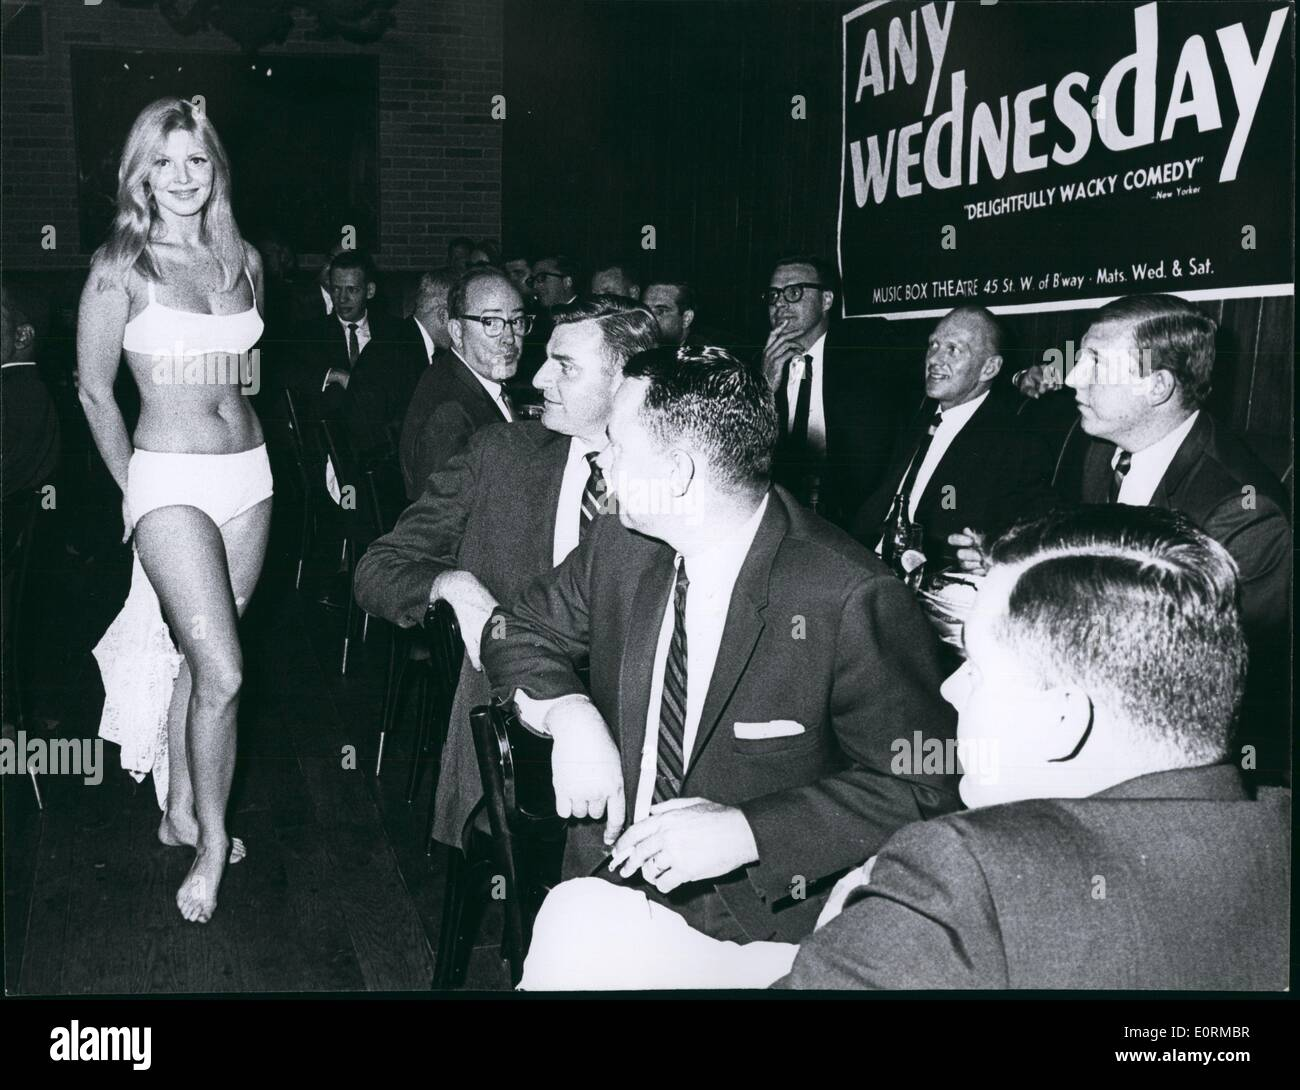 Jan 1, 1960 - Lunch-time bikine show at New York's Our Place Discotheque - Stock Image